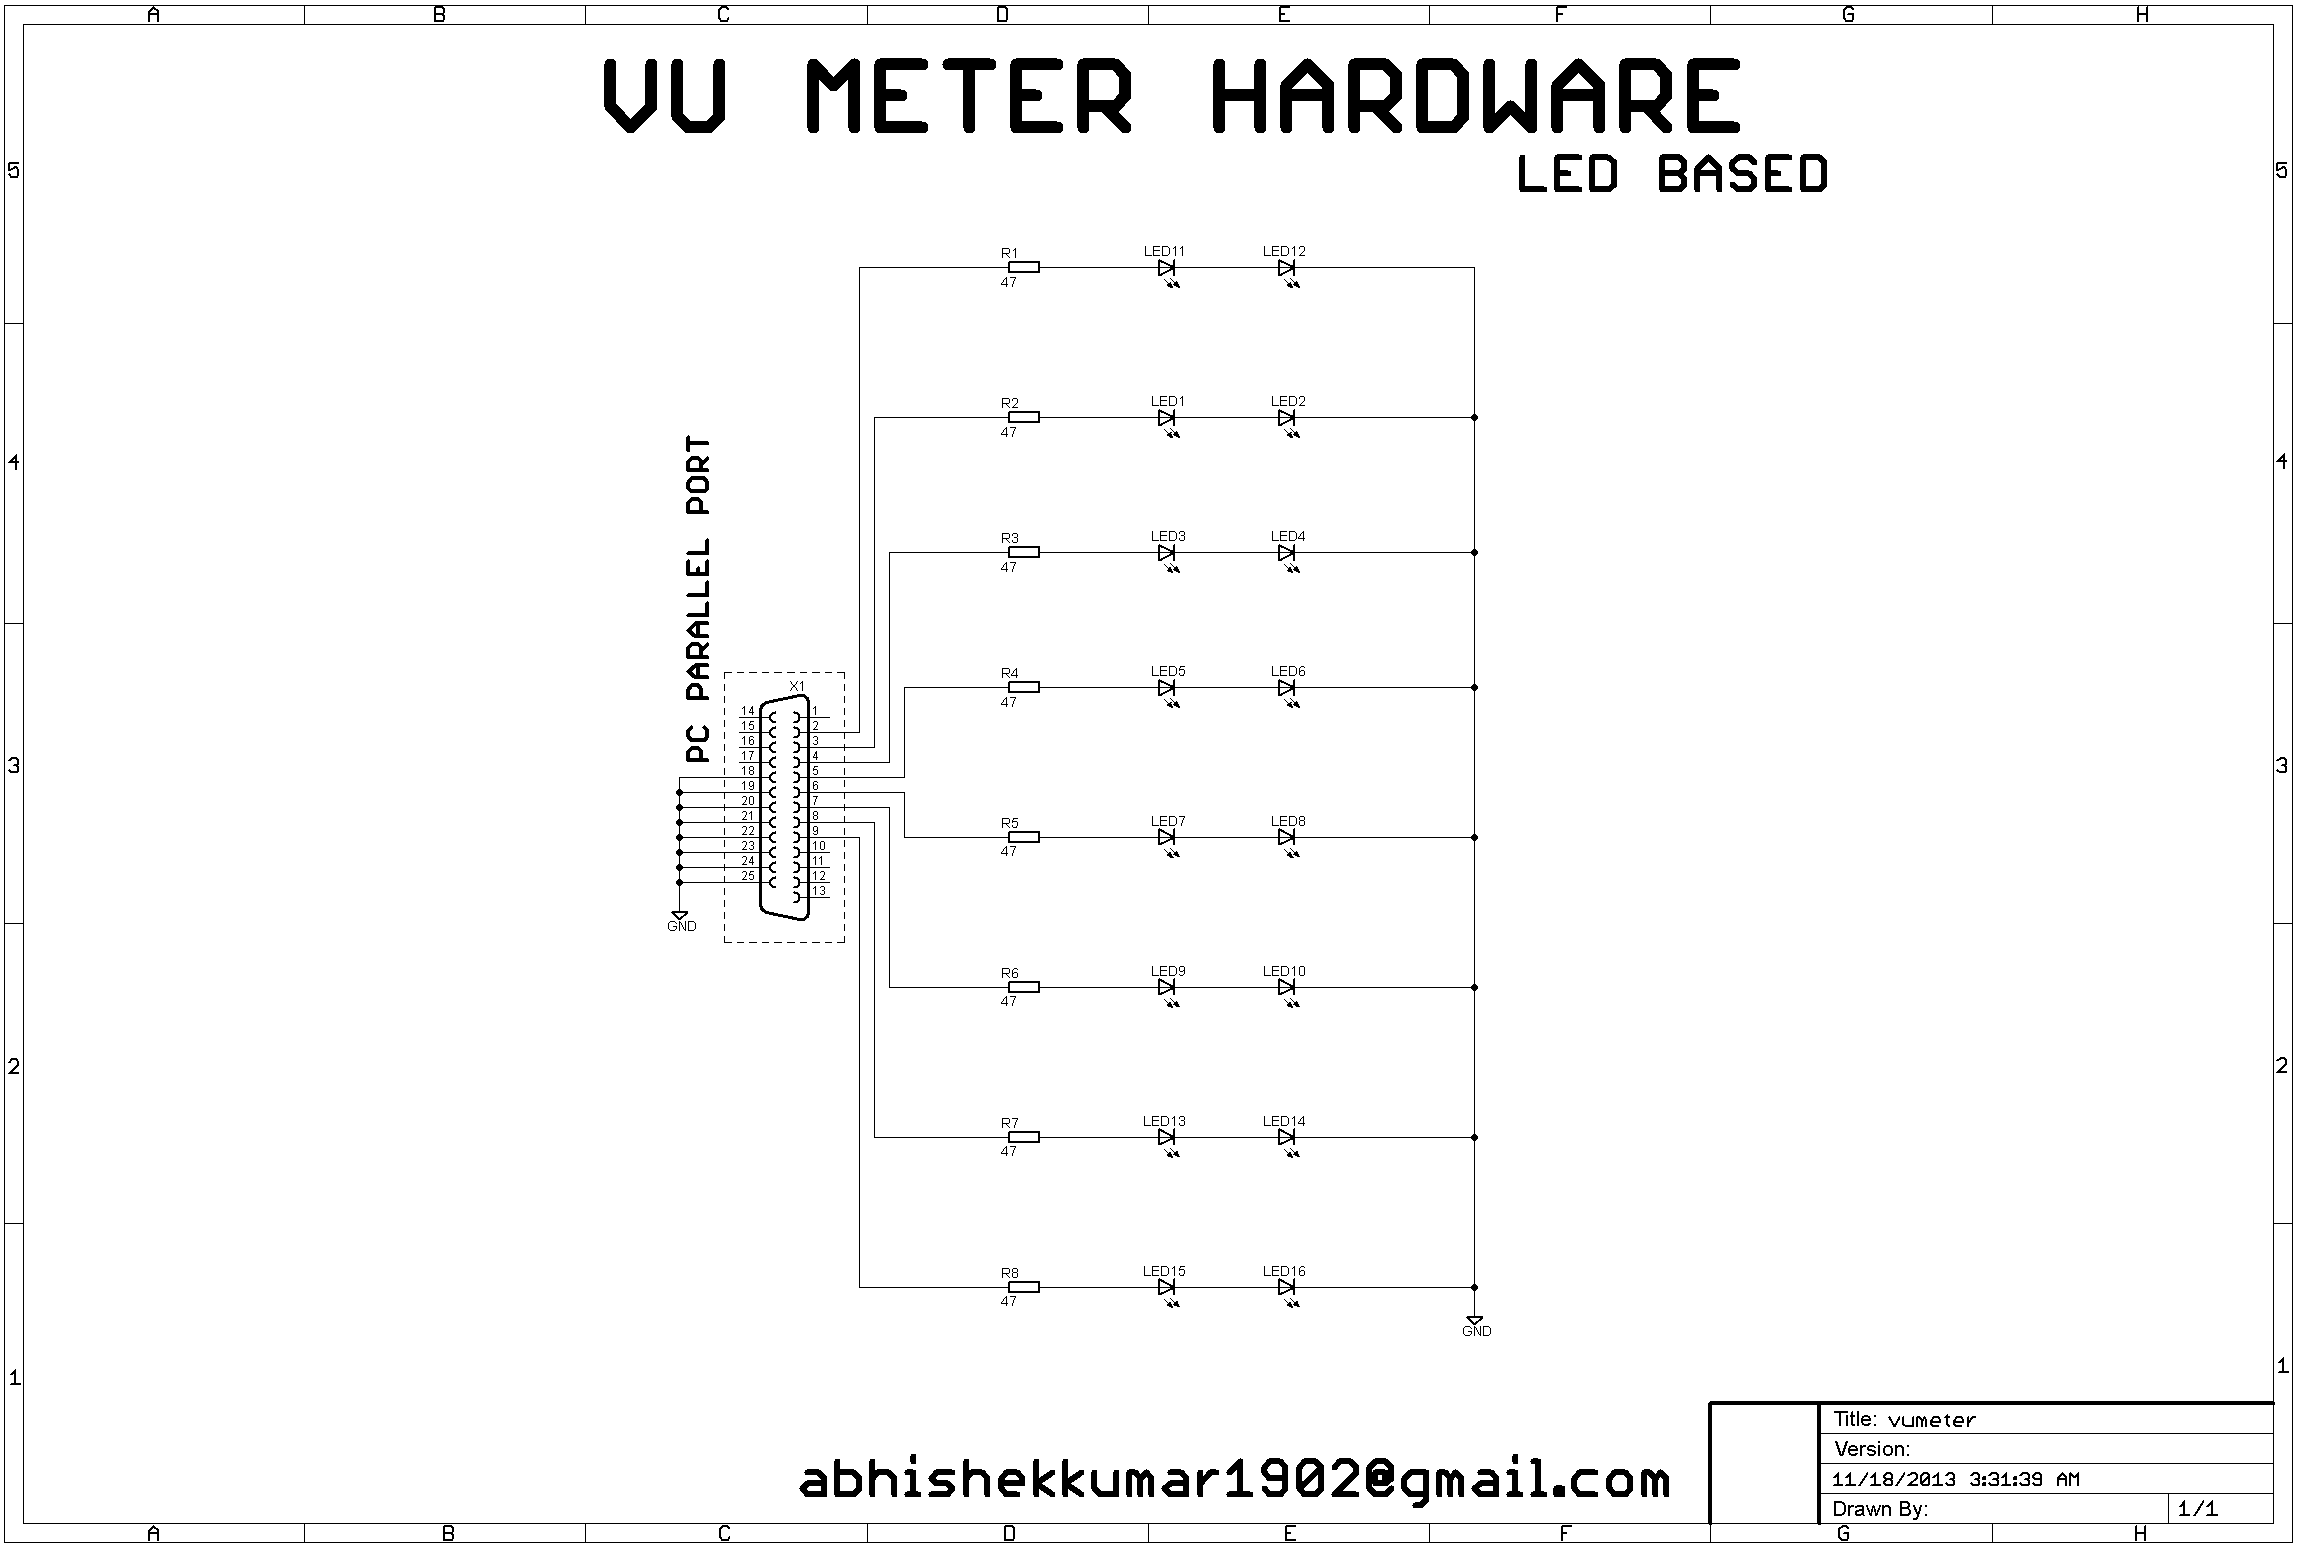 parallel port based vu meter